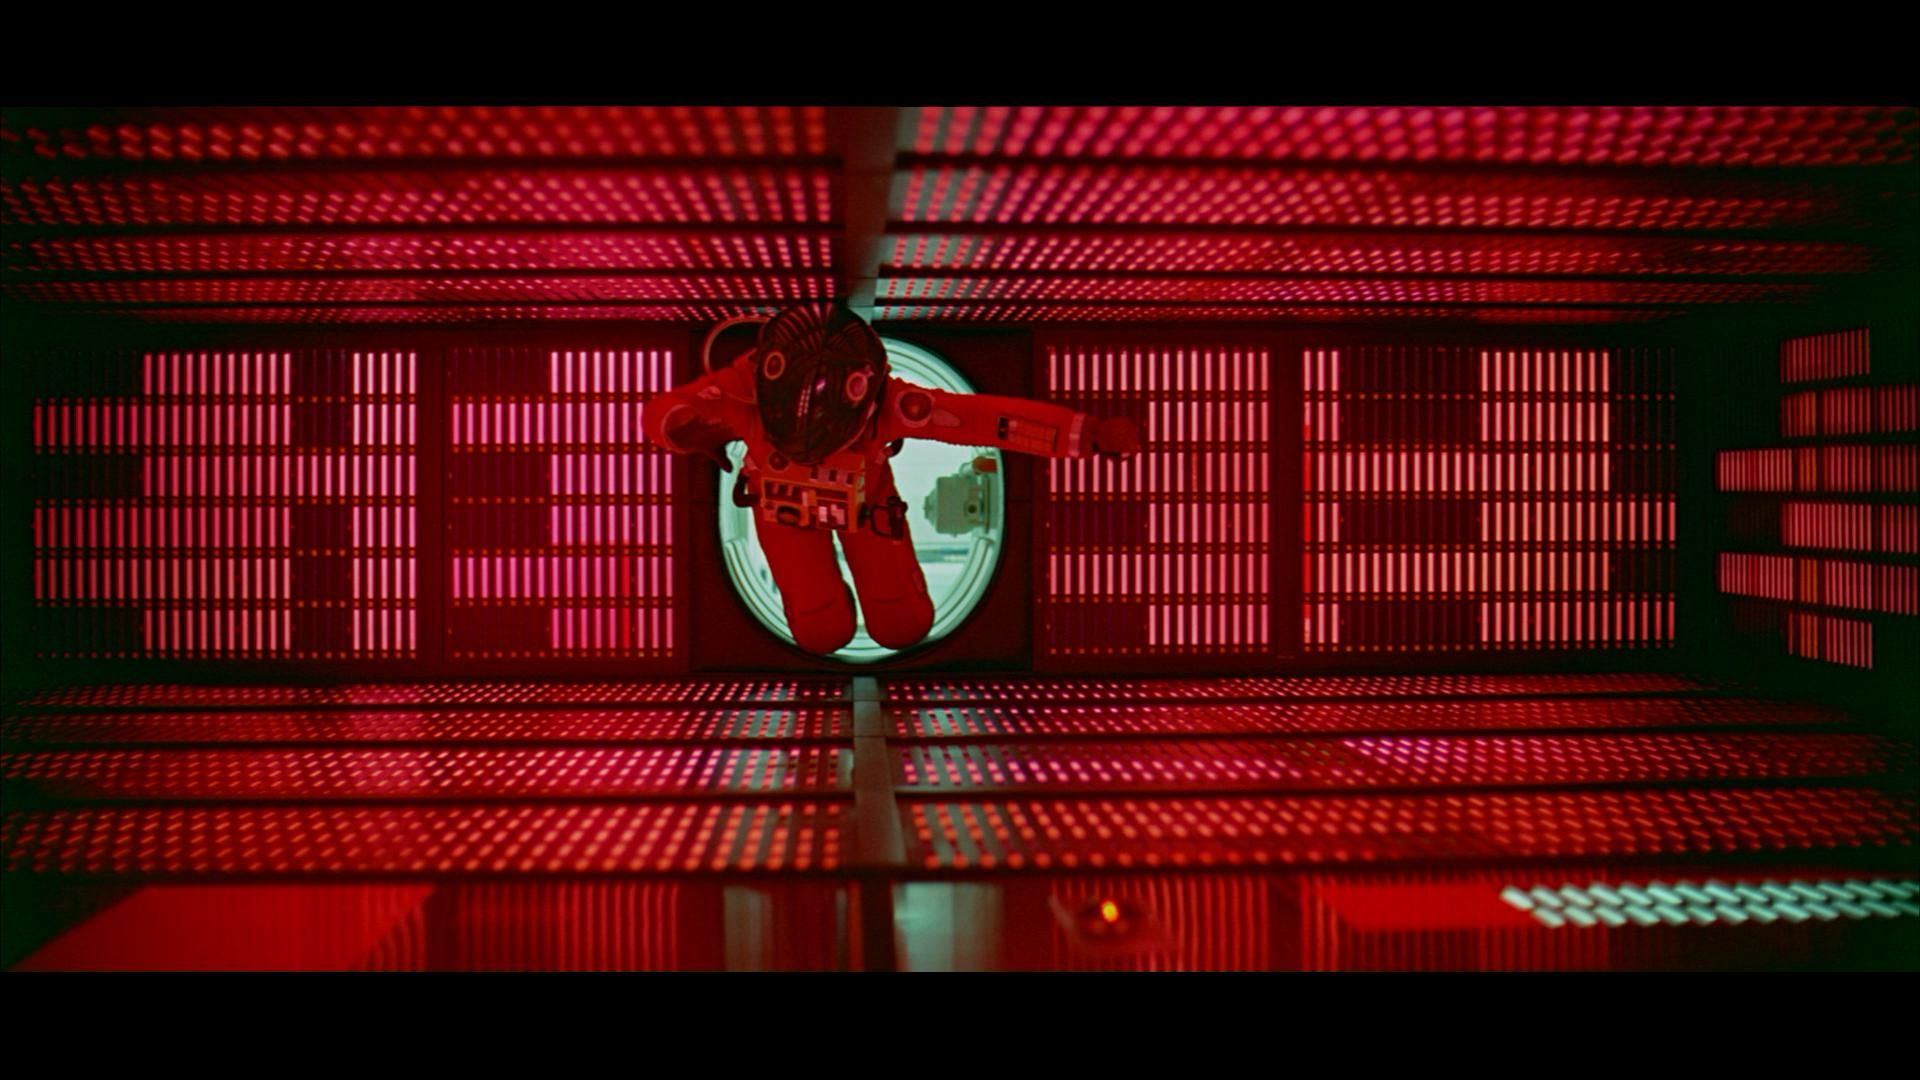 Movies 2001 A Space Odyssey Wallpaper 1920x1080 264261